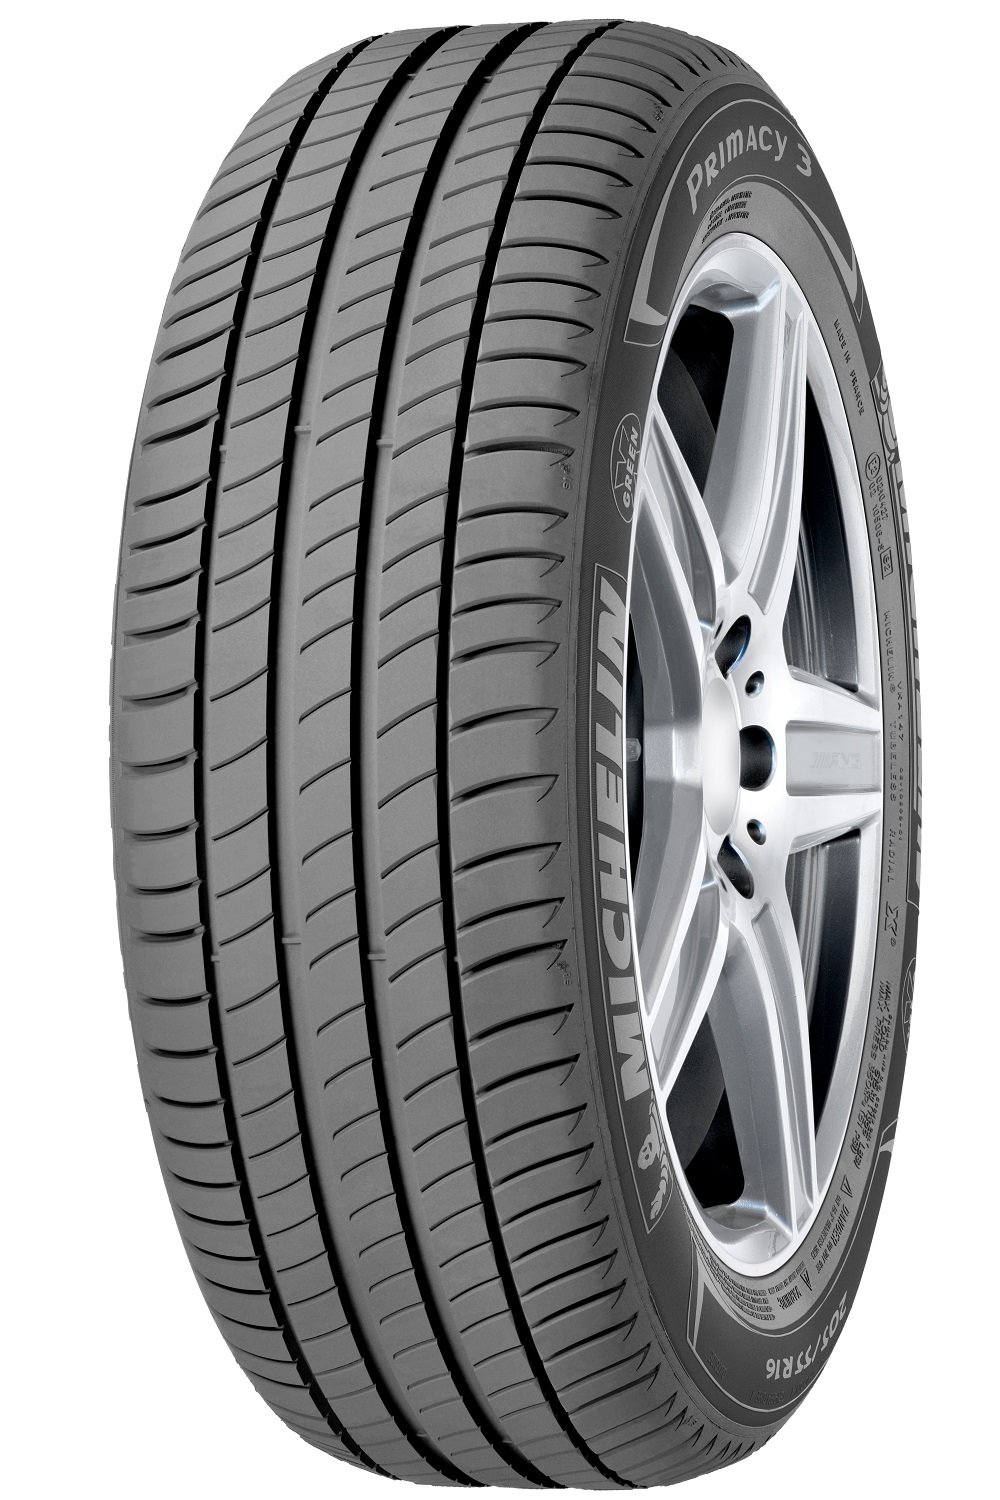 neumatico michelin primacy 3 235 45 17 94 y